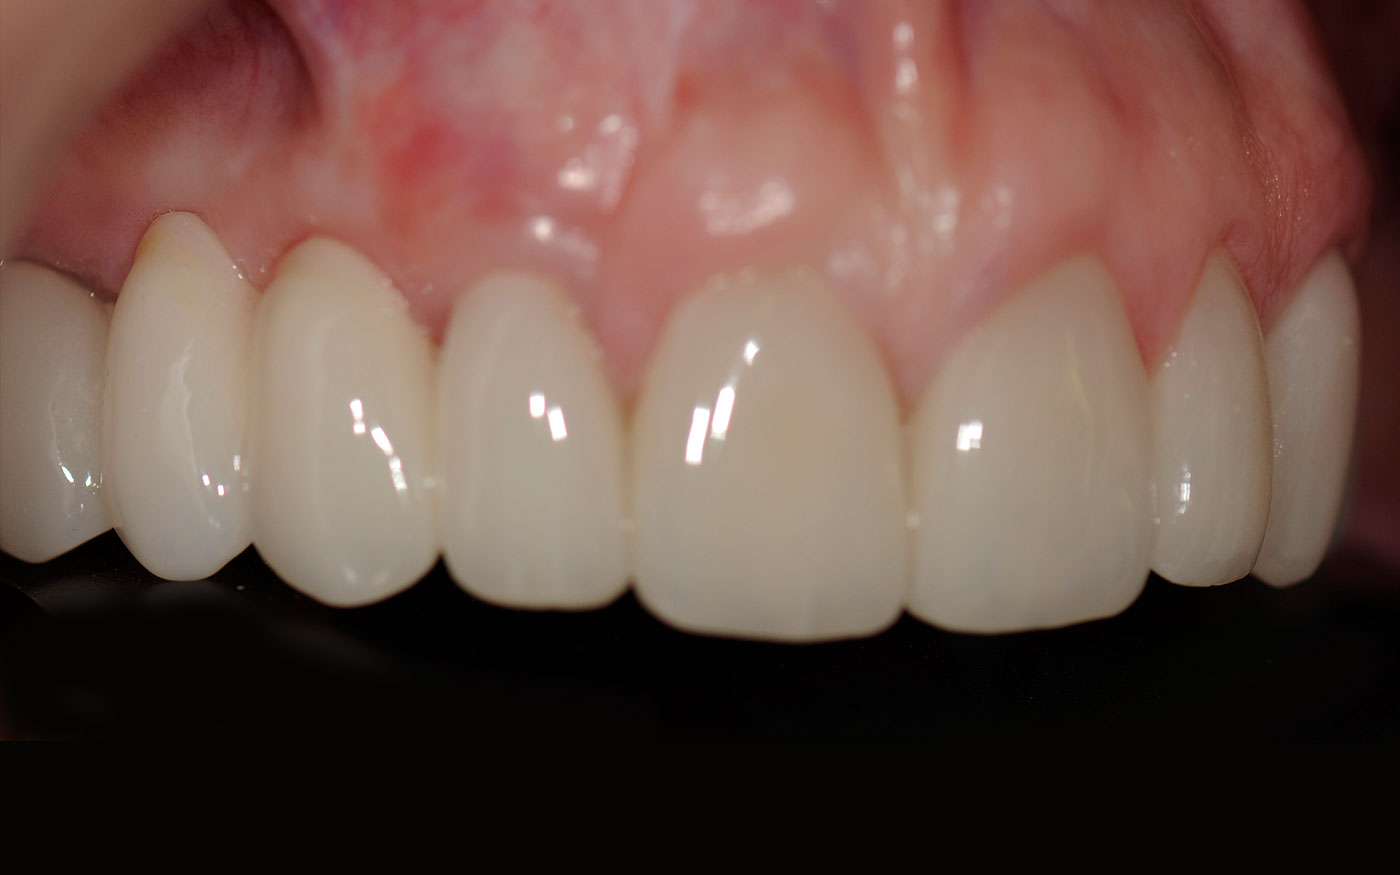 Gum treatment to cover receding gums combined with replacement of old crowns and a denture with dental Implants and crown restoration